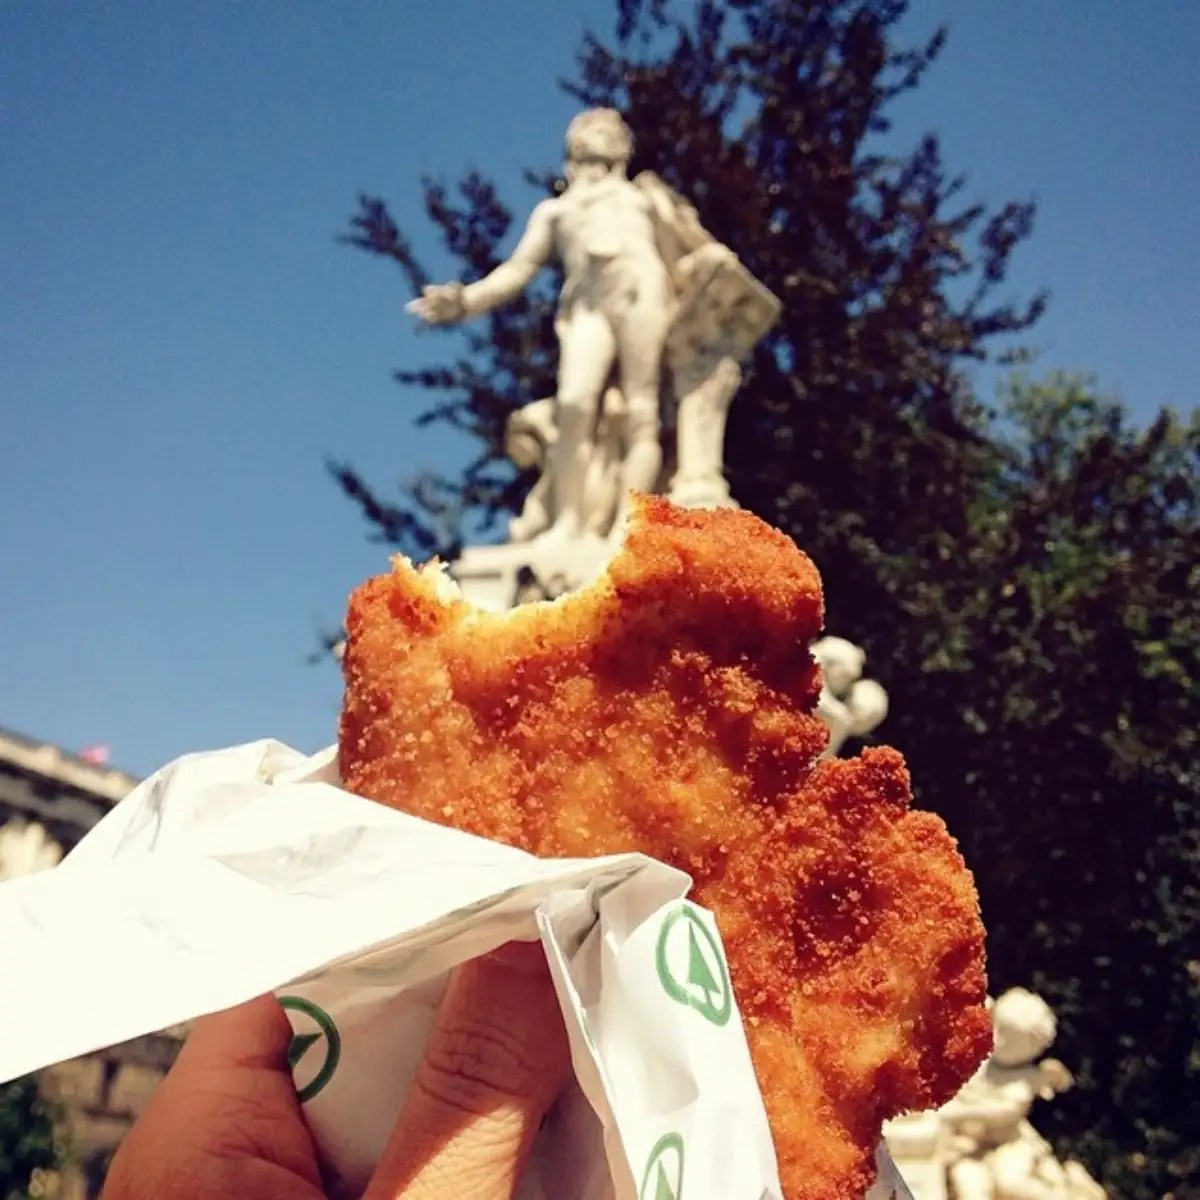 Schnitzel in front of the Mozart statue in Vienna.